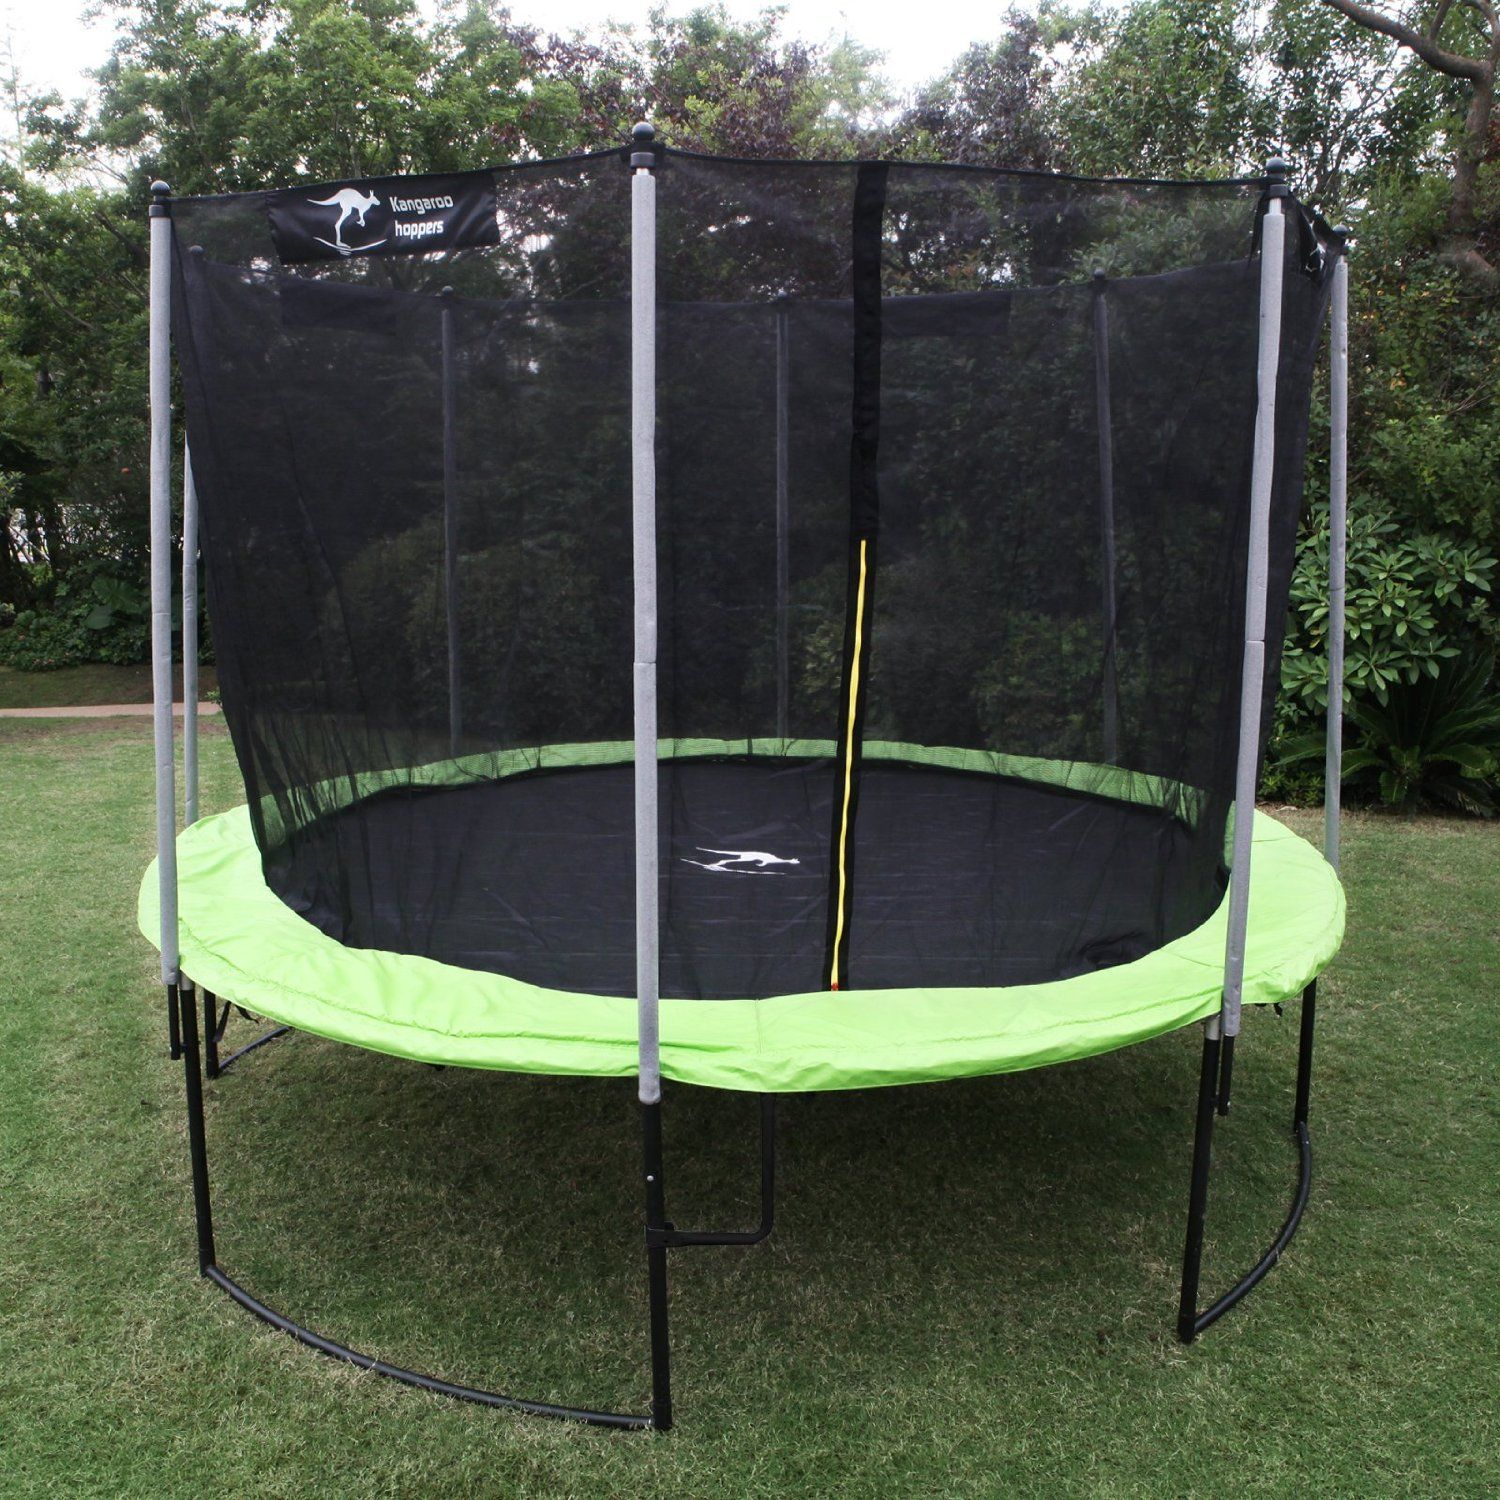 Kangaroo Hoppers 12-Feet Round Trampoline with Safety Net ...